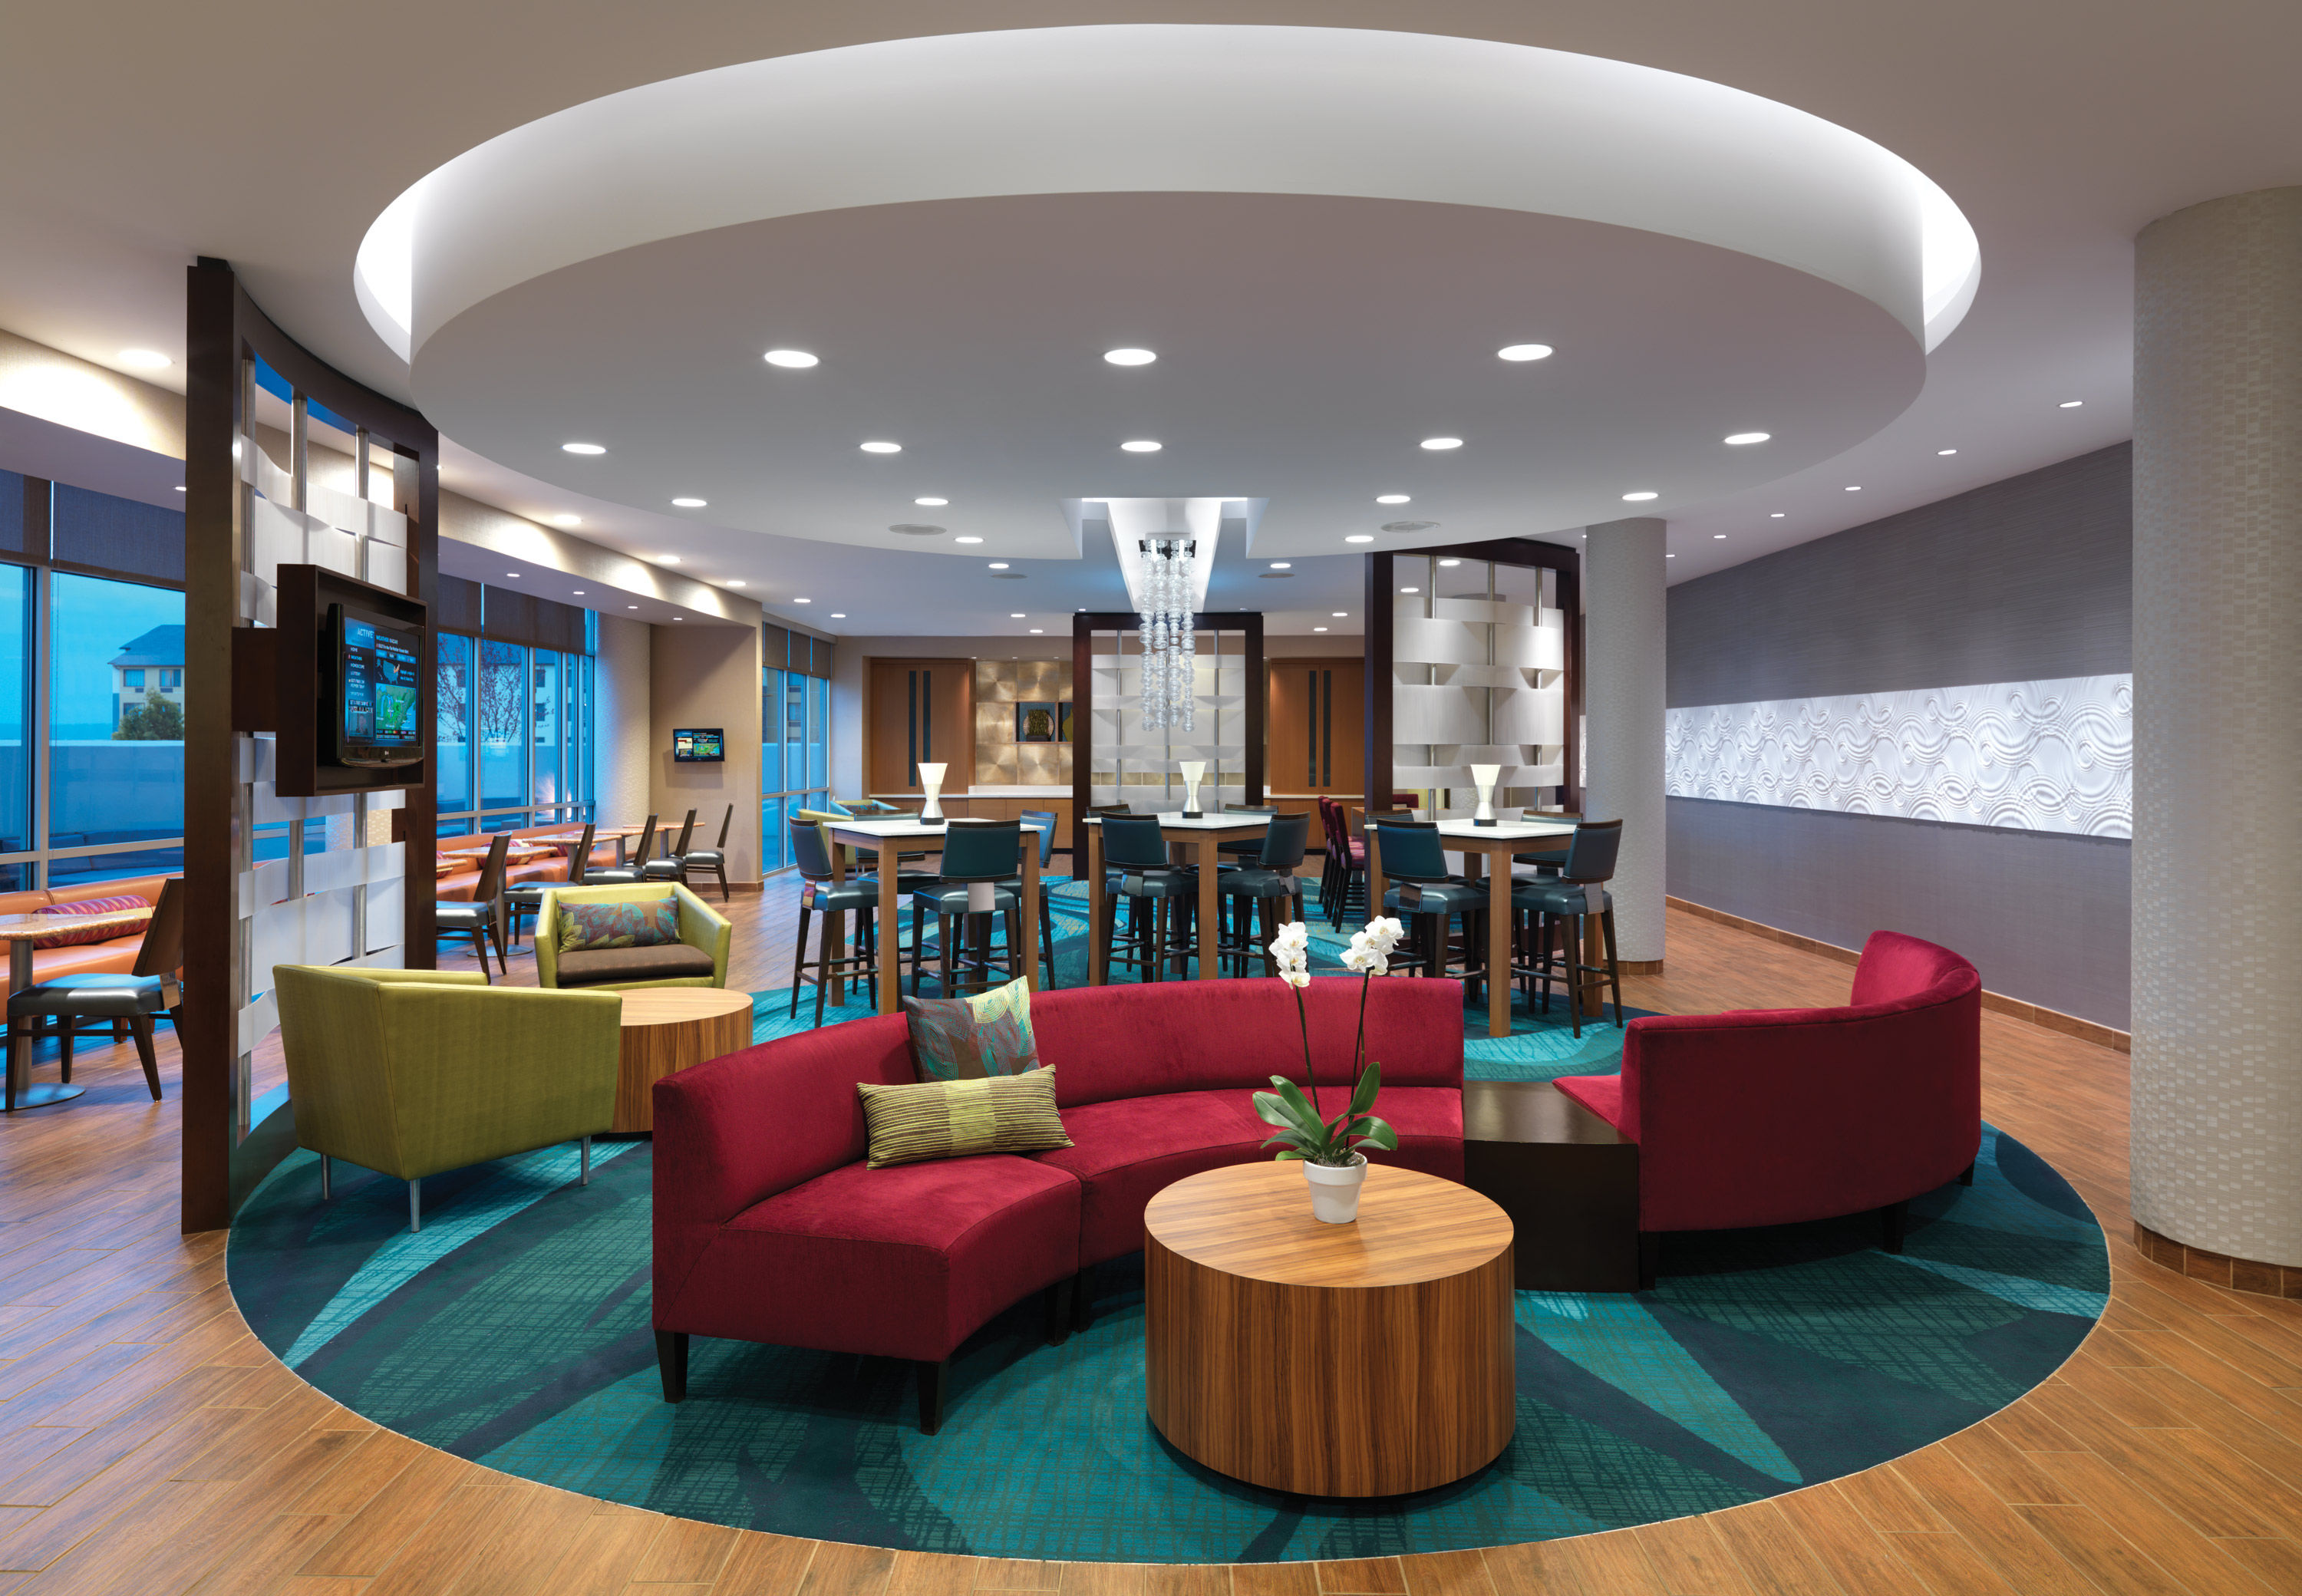 SpringHill Suites by Marriott Buffalo Airport image 9